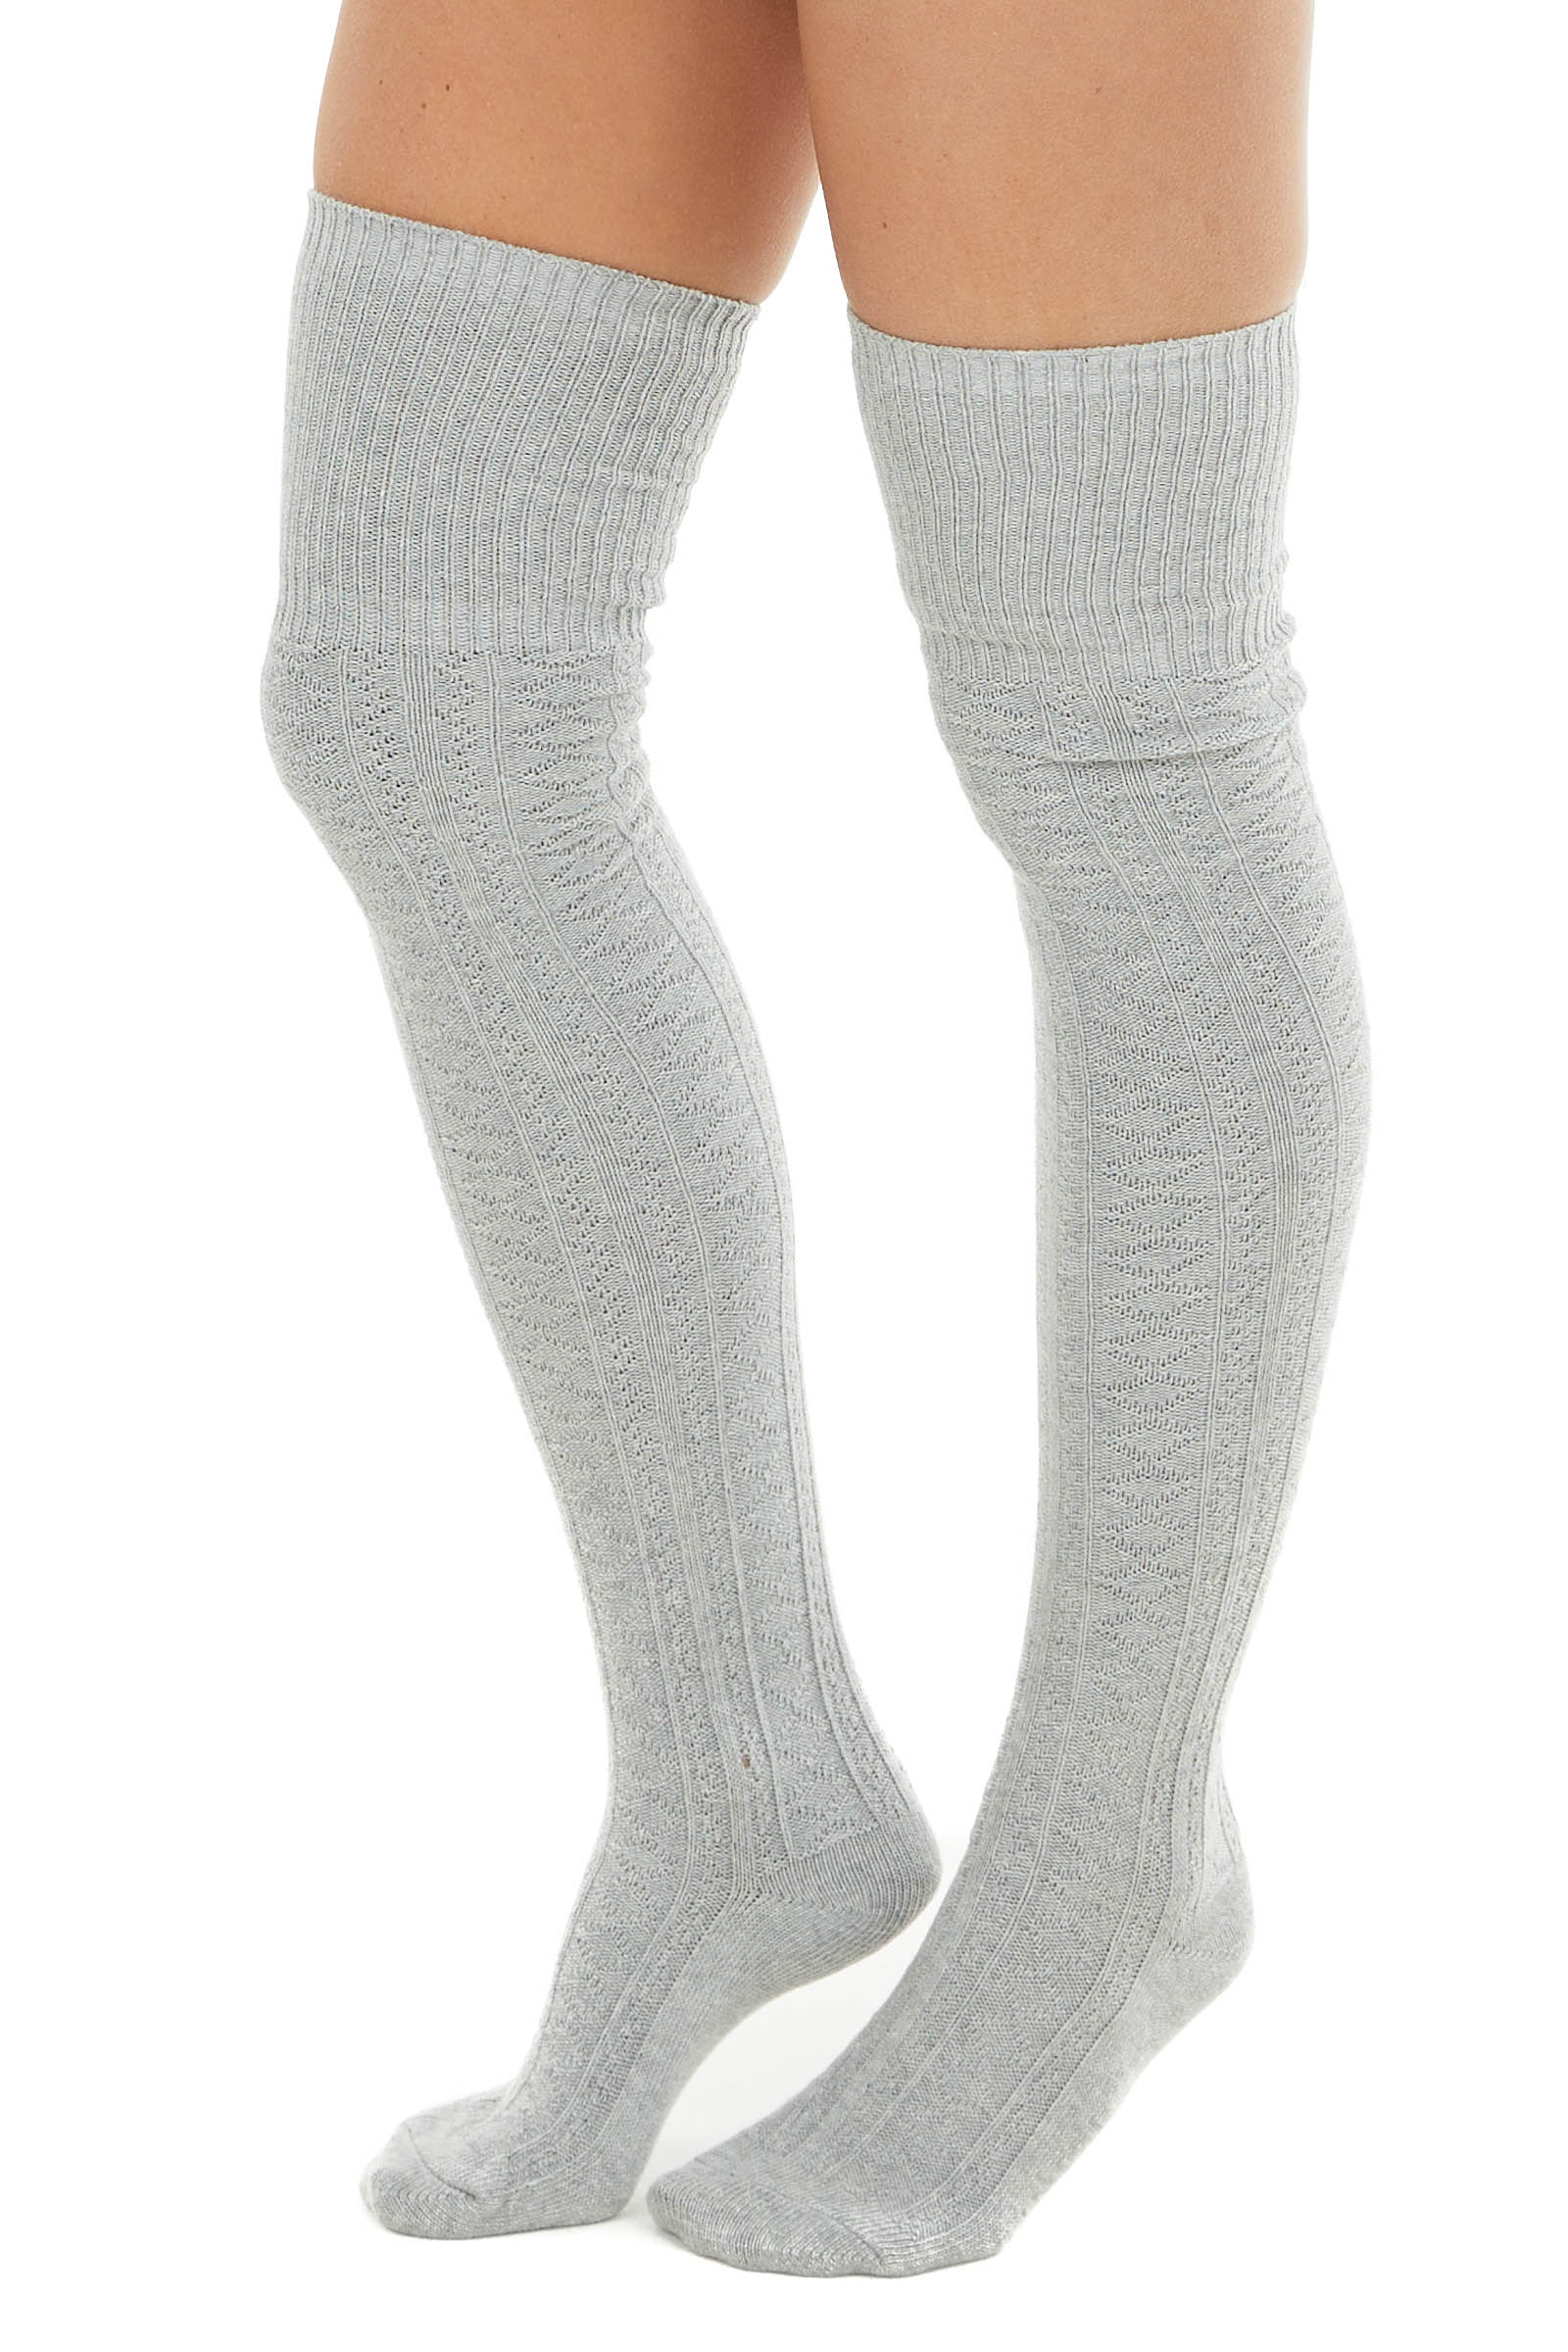 Light Grey Small Cable Knit Over the Knee High Fashion Socks